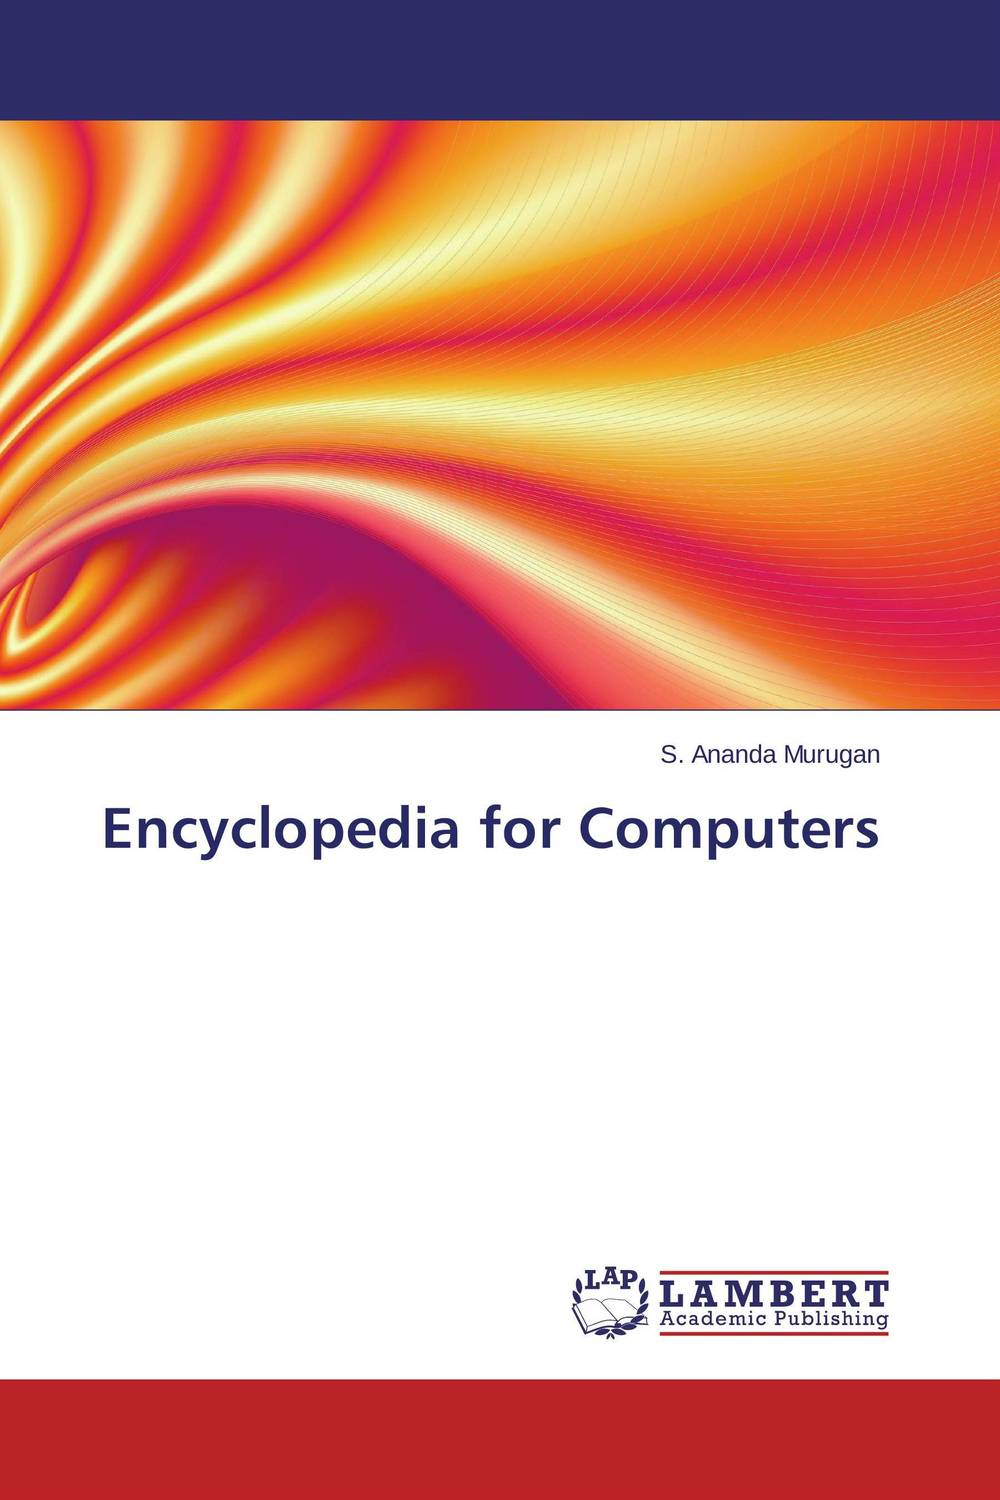 Encyclopedia for Computers